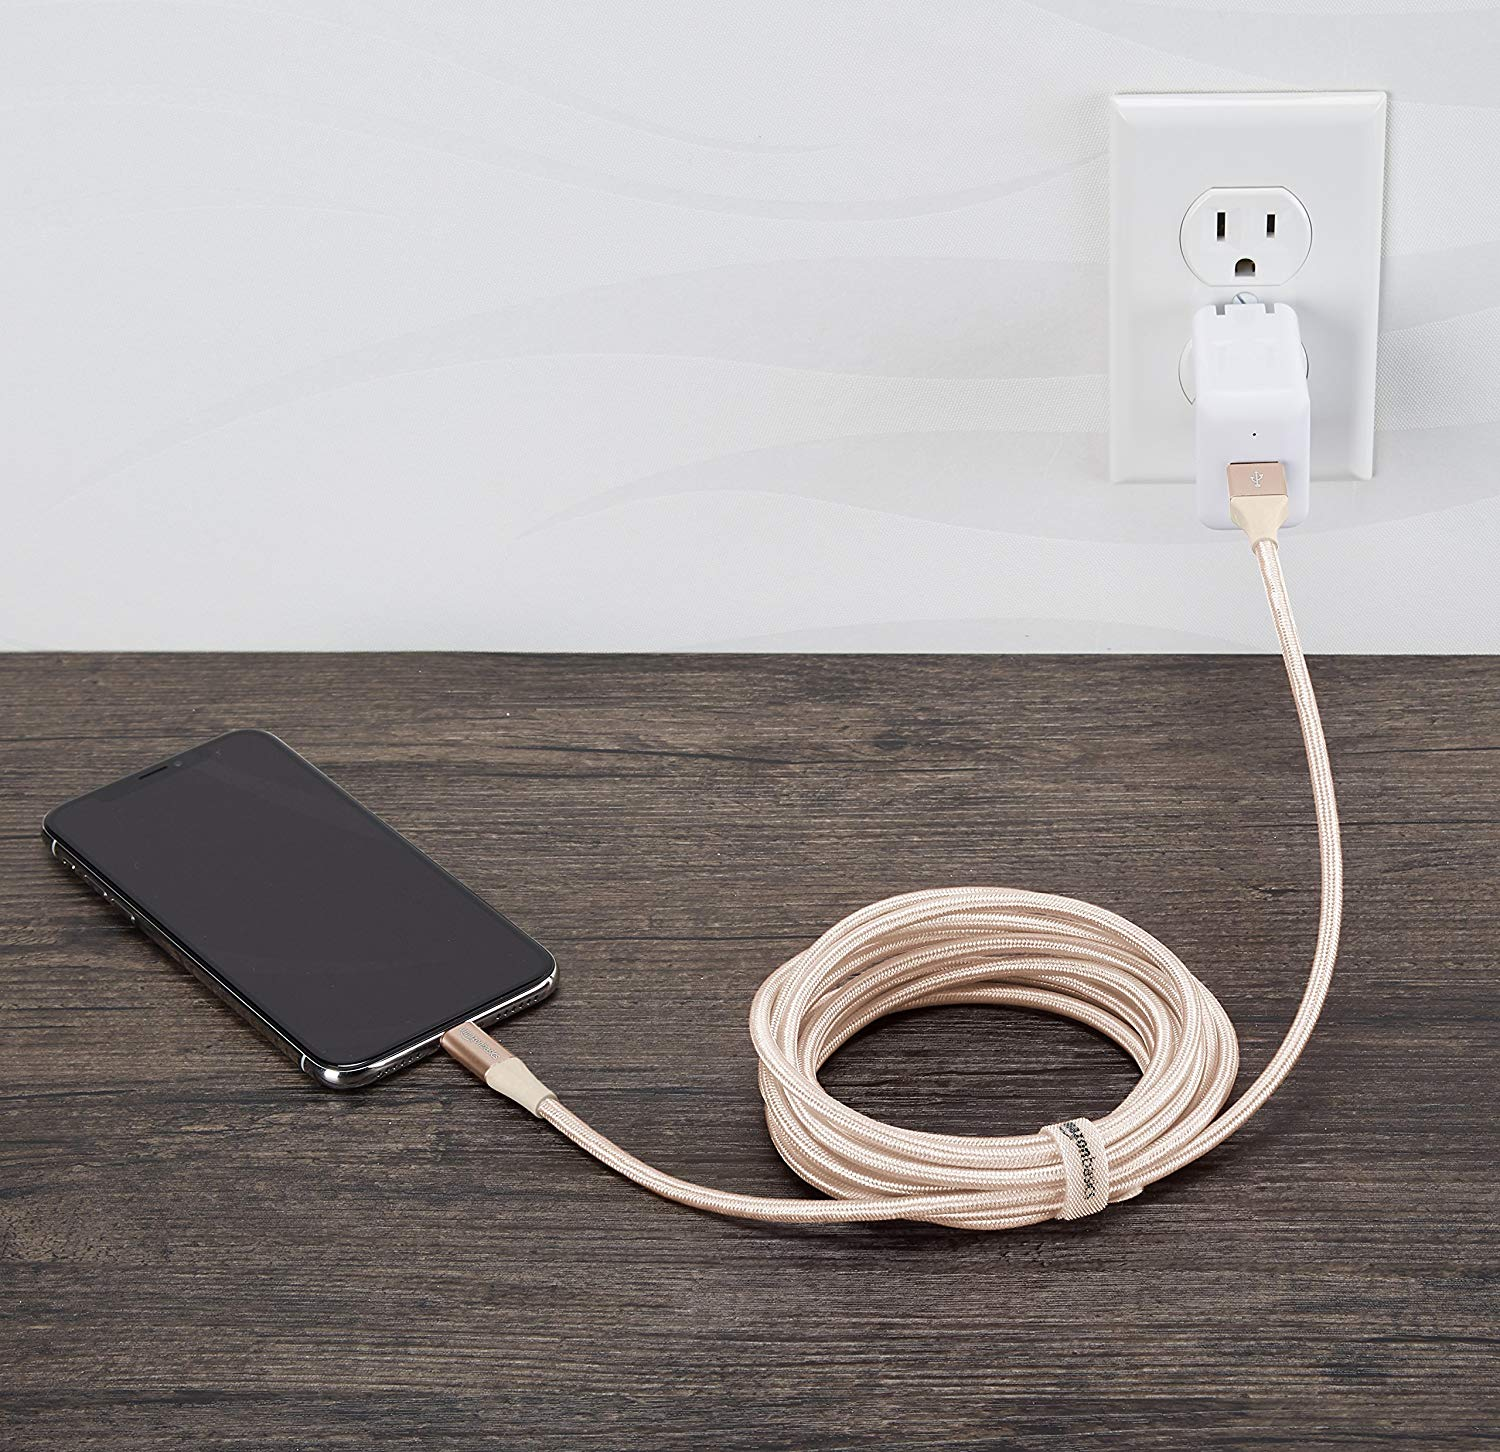 10-Foot Braided iPhone Charger  ($17) — I never knew how much I needed an XL iPhone charger until I had one. I no longer have to go numb on one side when I'm scrolling Reddit in bed, and trying to find a seat near an outlet at the airport is a nightmare of the past.